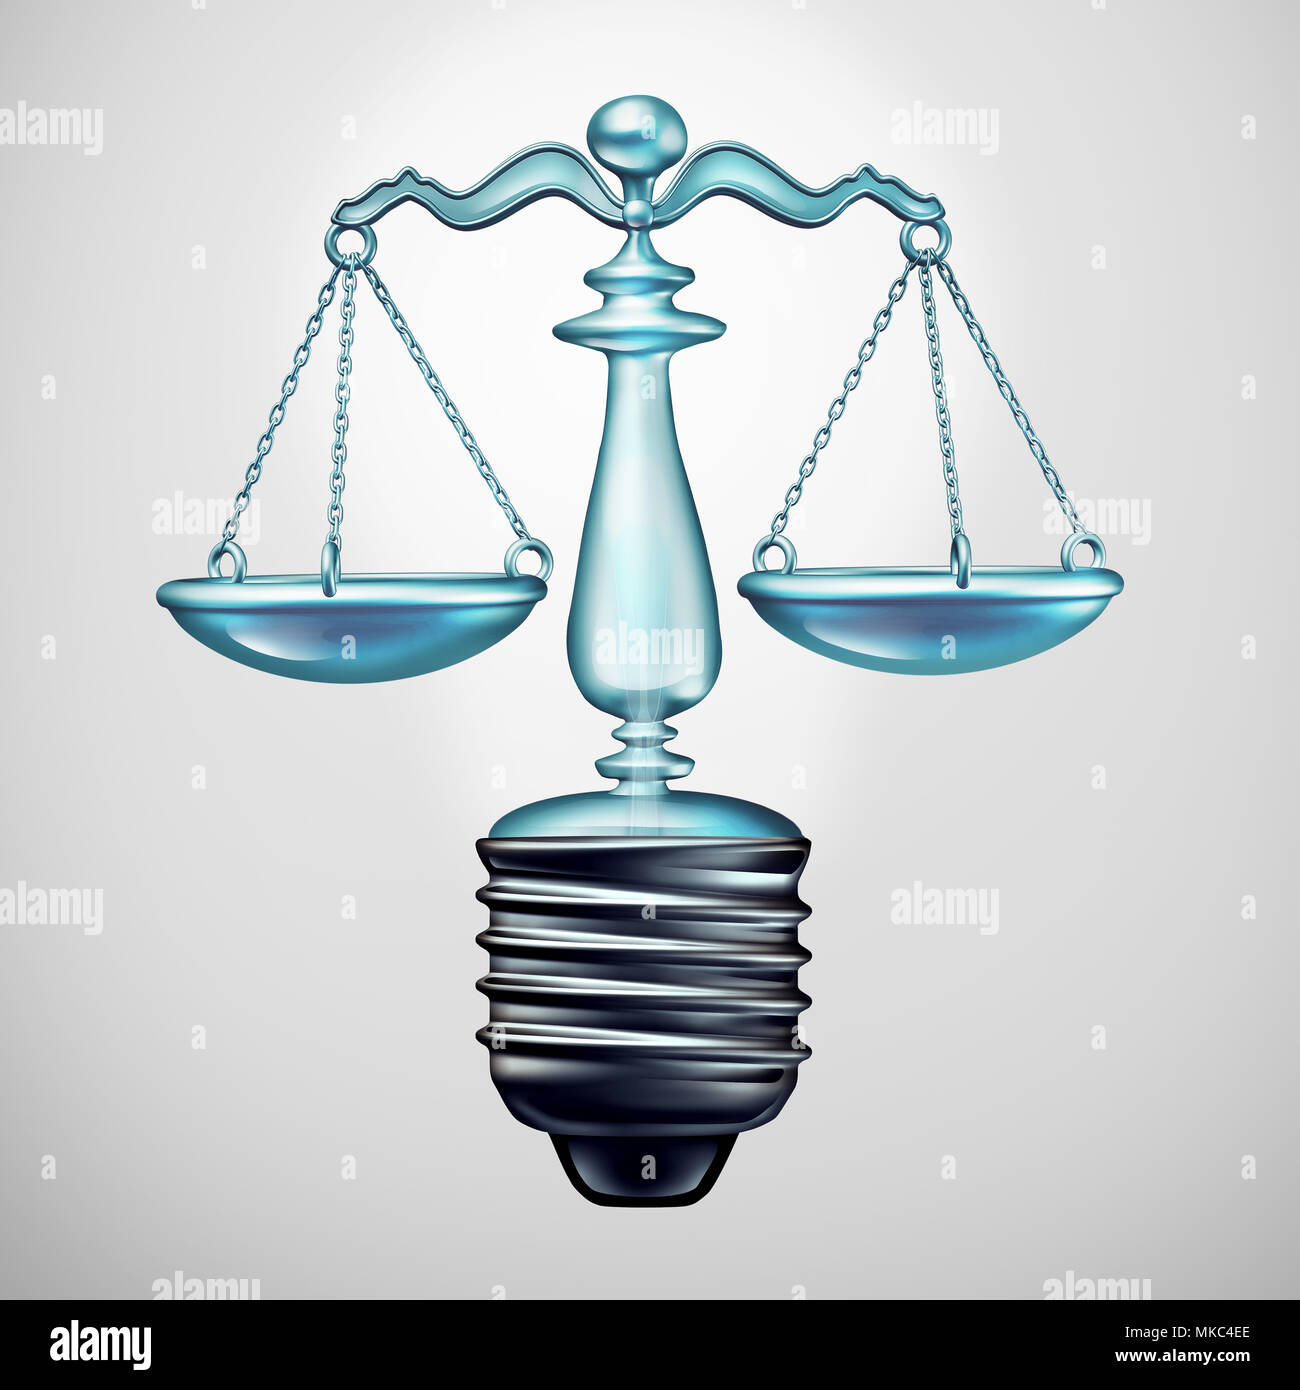 Law solution and legal ideas concept and judgement symbol as a light bulb justice scale as a metaphor for new legislation and lawyer ideas. - Stock Image